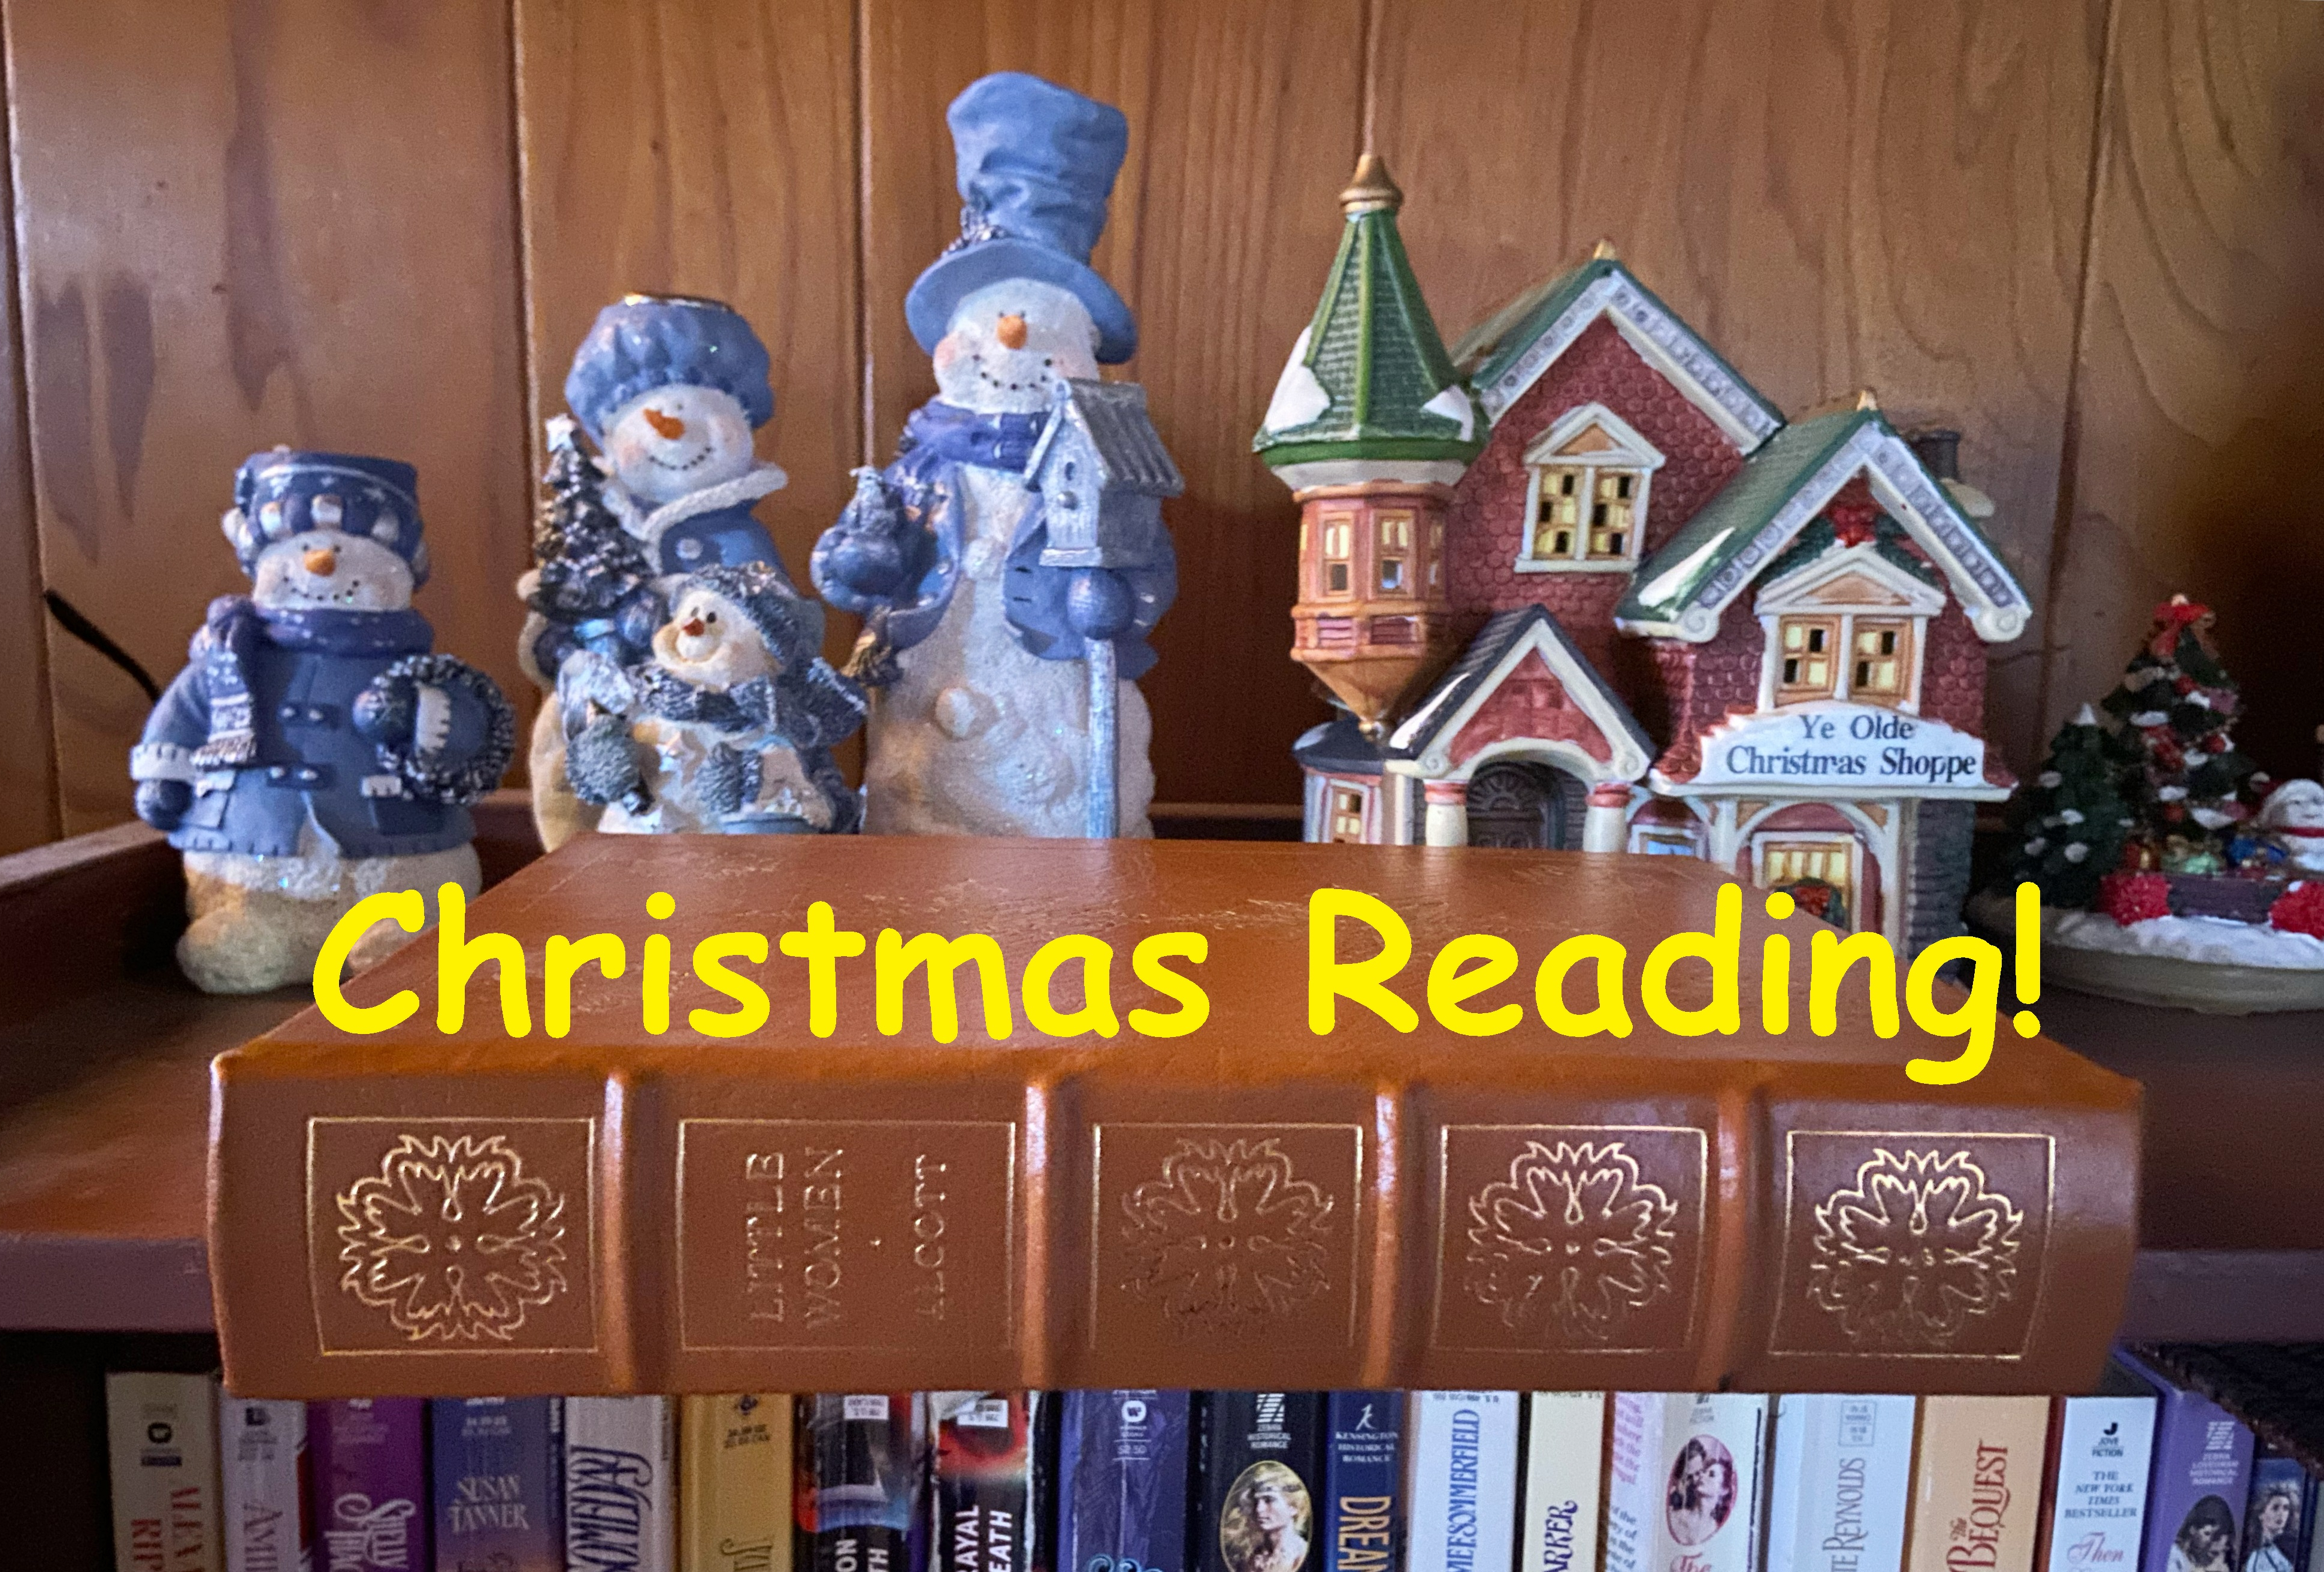 Reading Books for Christmas, Gifting & Reading Books for Christmas – Icelandic Traditions, The Travel Bug Bite